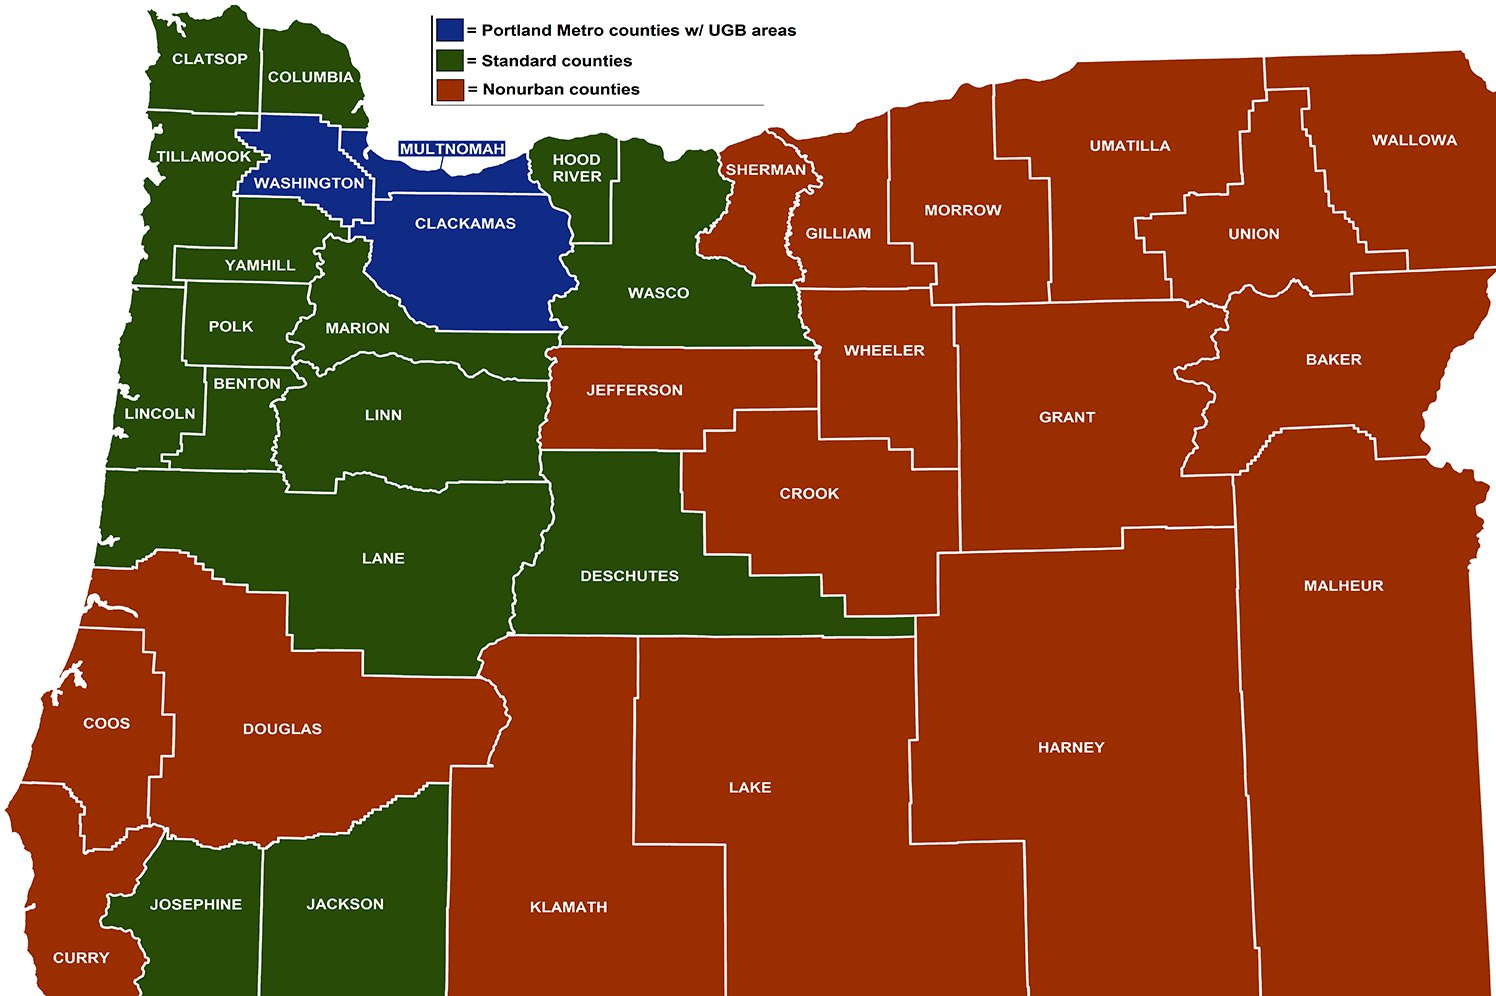 oregon's standard and non-urban counties